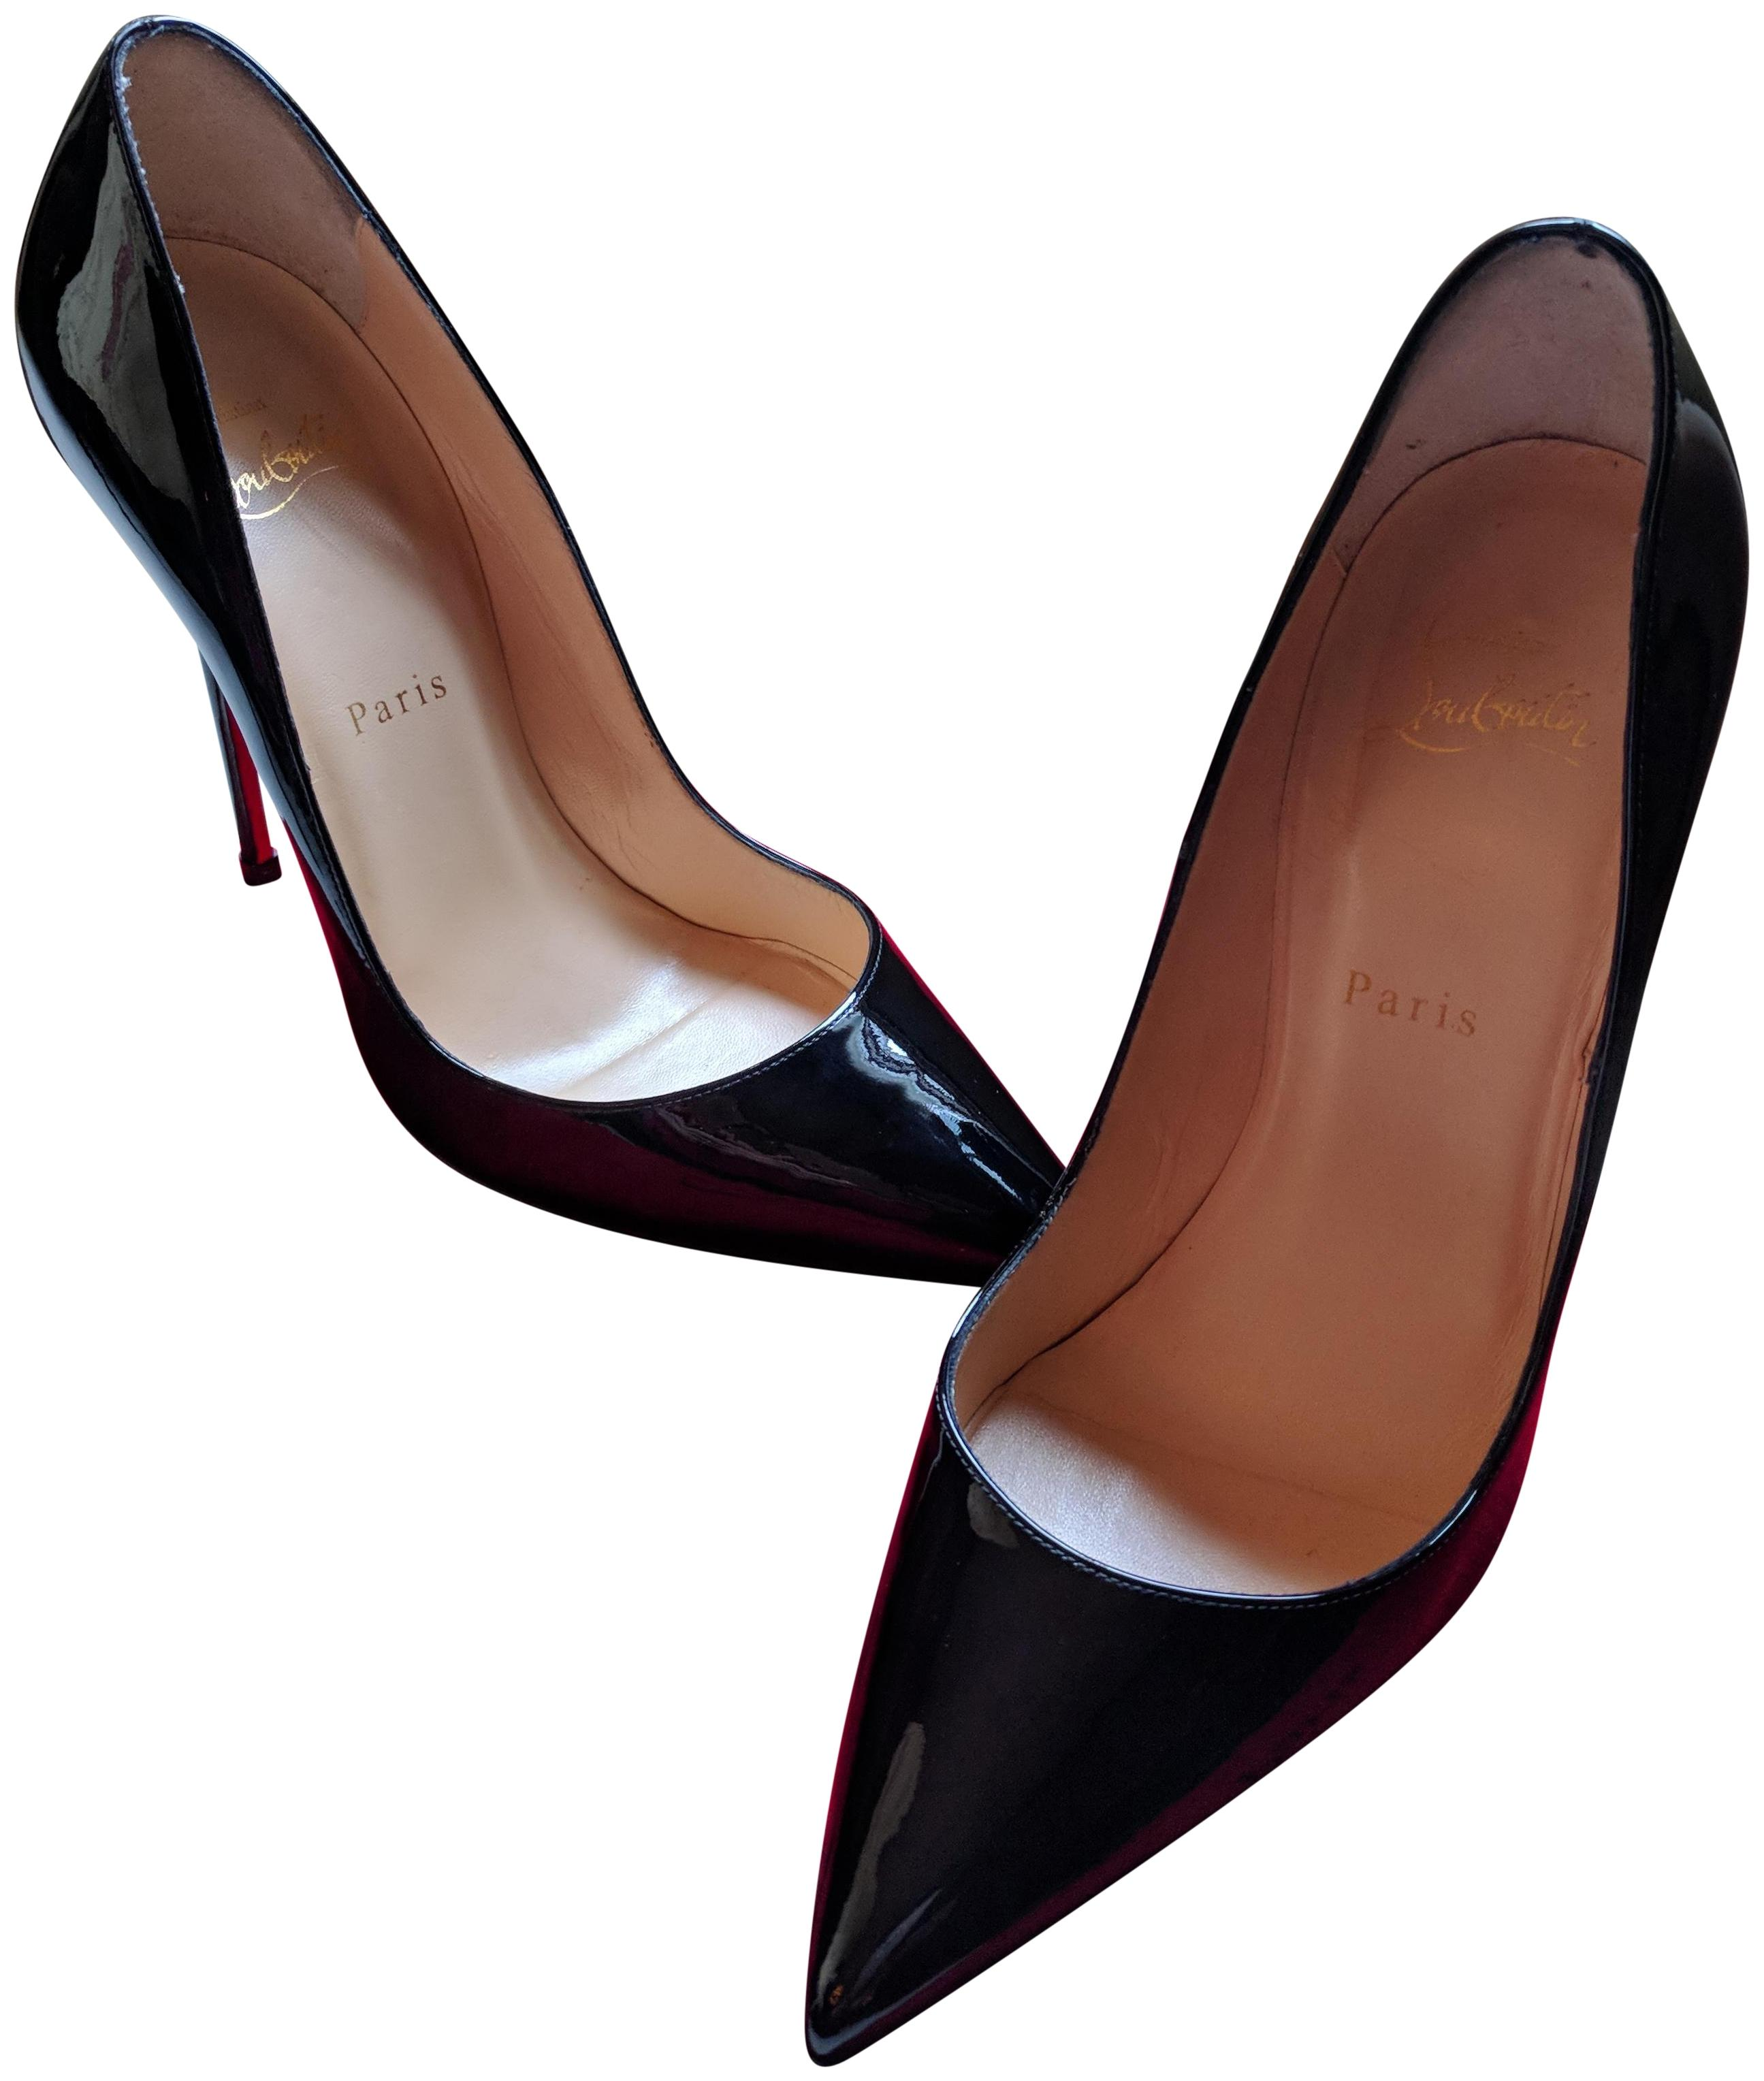 96c6b0c80b47 Christian Louboutin Black So Kate 120mm 120mm 120mm Patent Leather Pumps  Size EU 38.5 (Approx ...